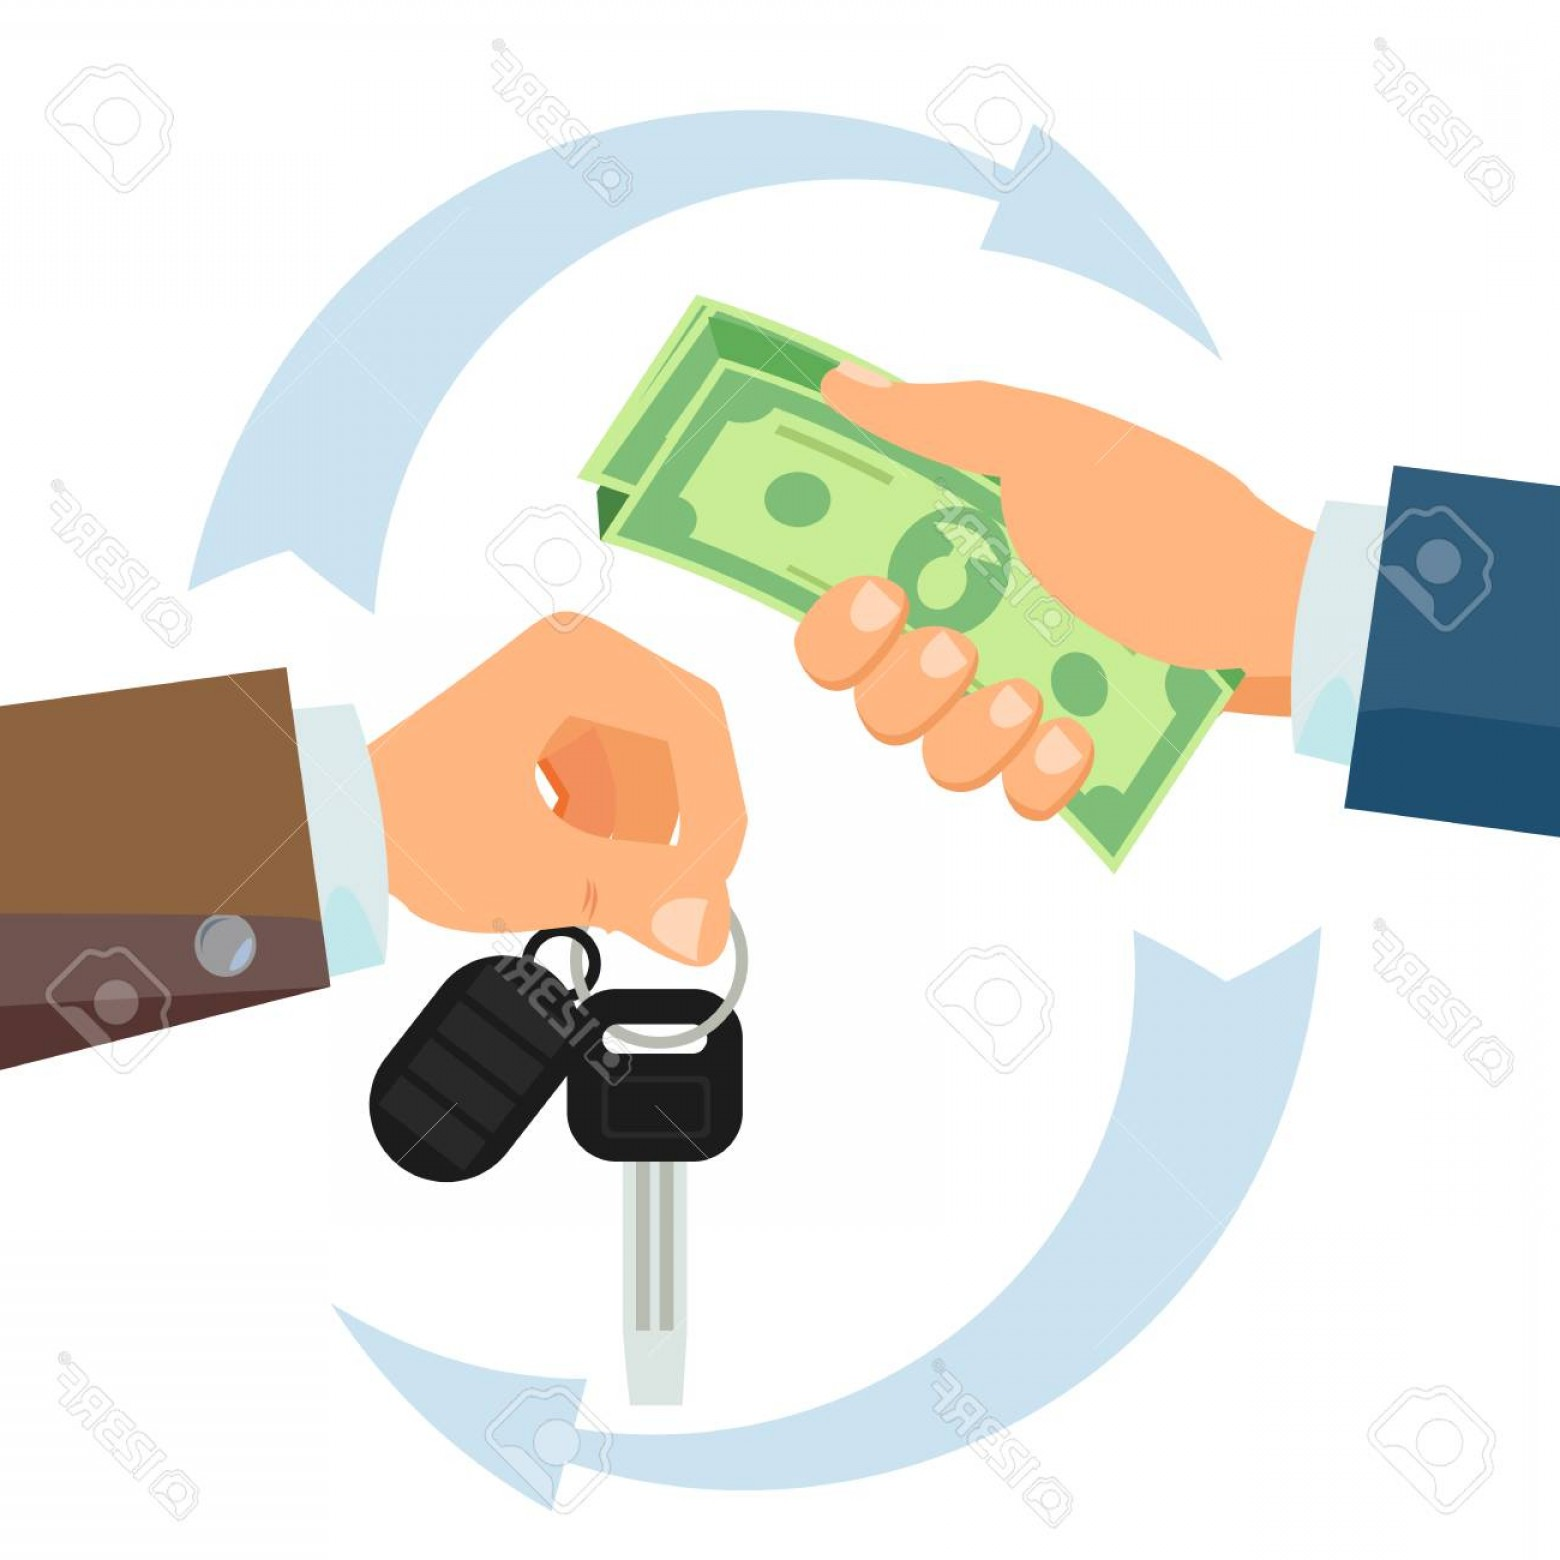 Salesman Vector: Photostock Vector Hand Giving Car Keys Vector Business Car Rental Sale Concept Car Salesman And New Owner Holding Car